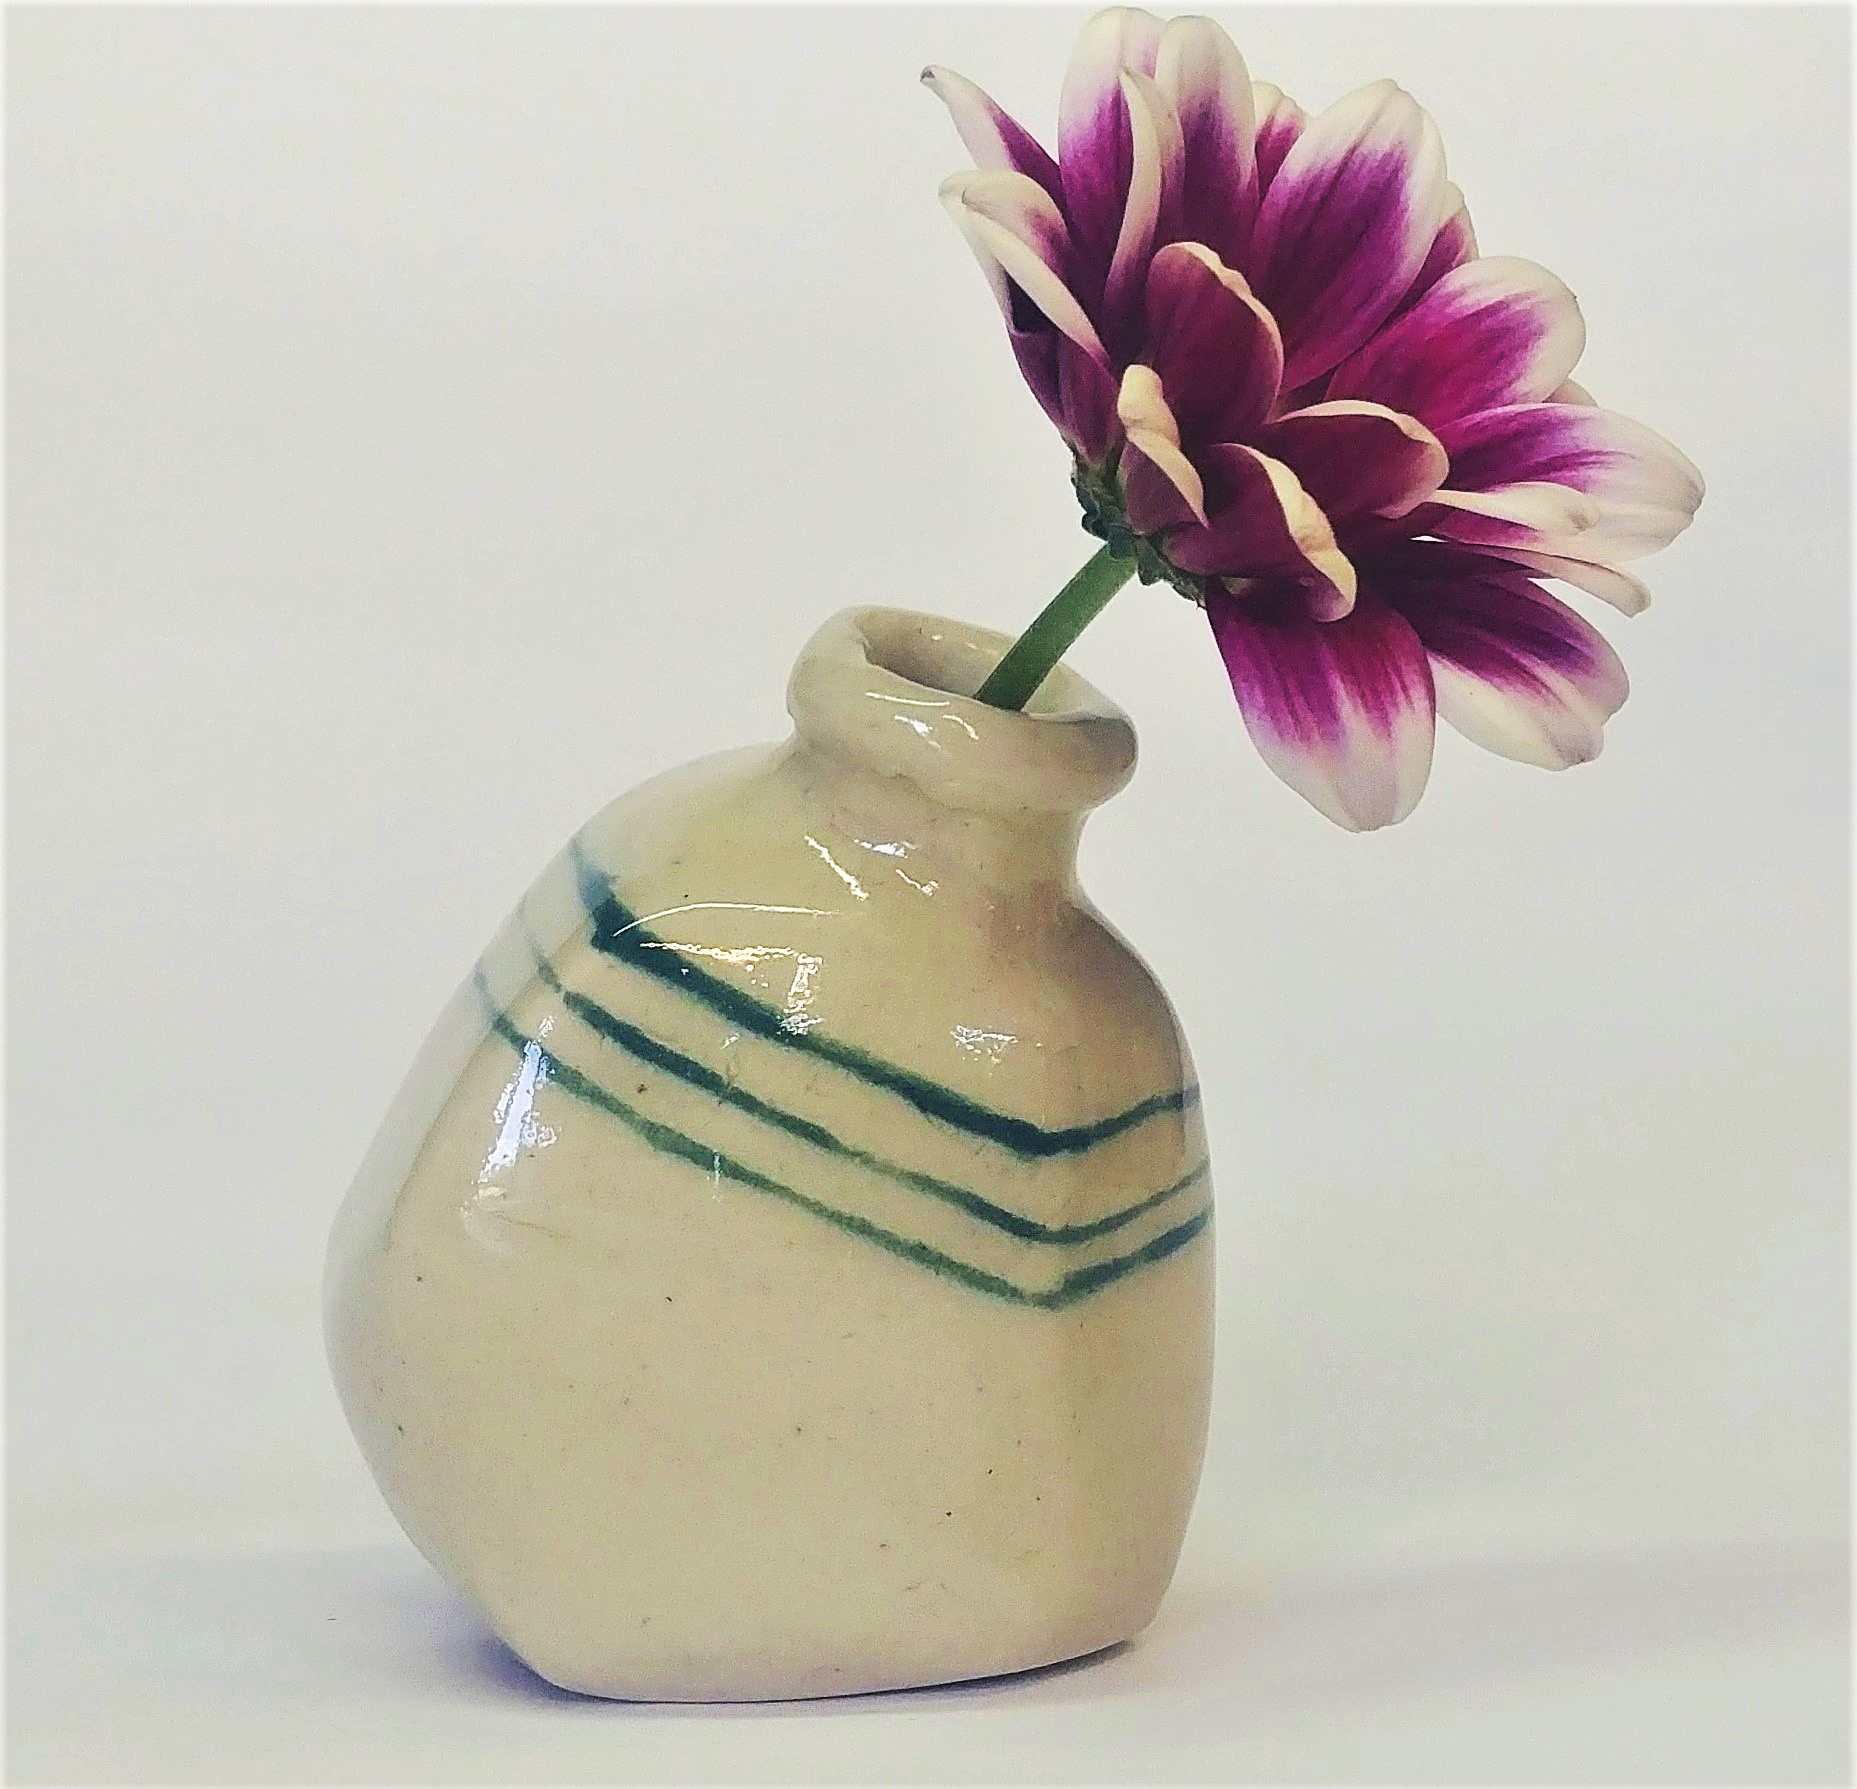 Hand built vase created in a mini workshop.